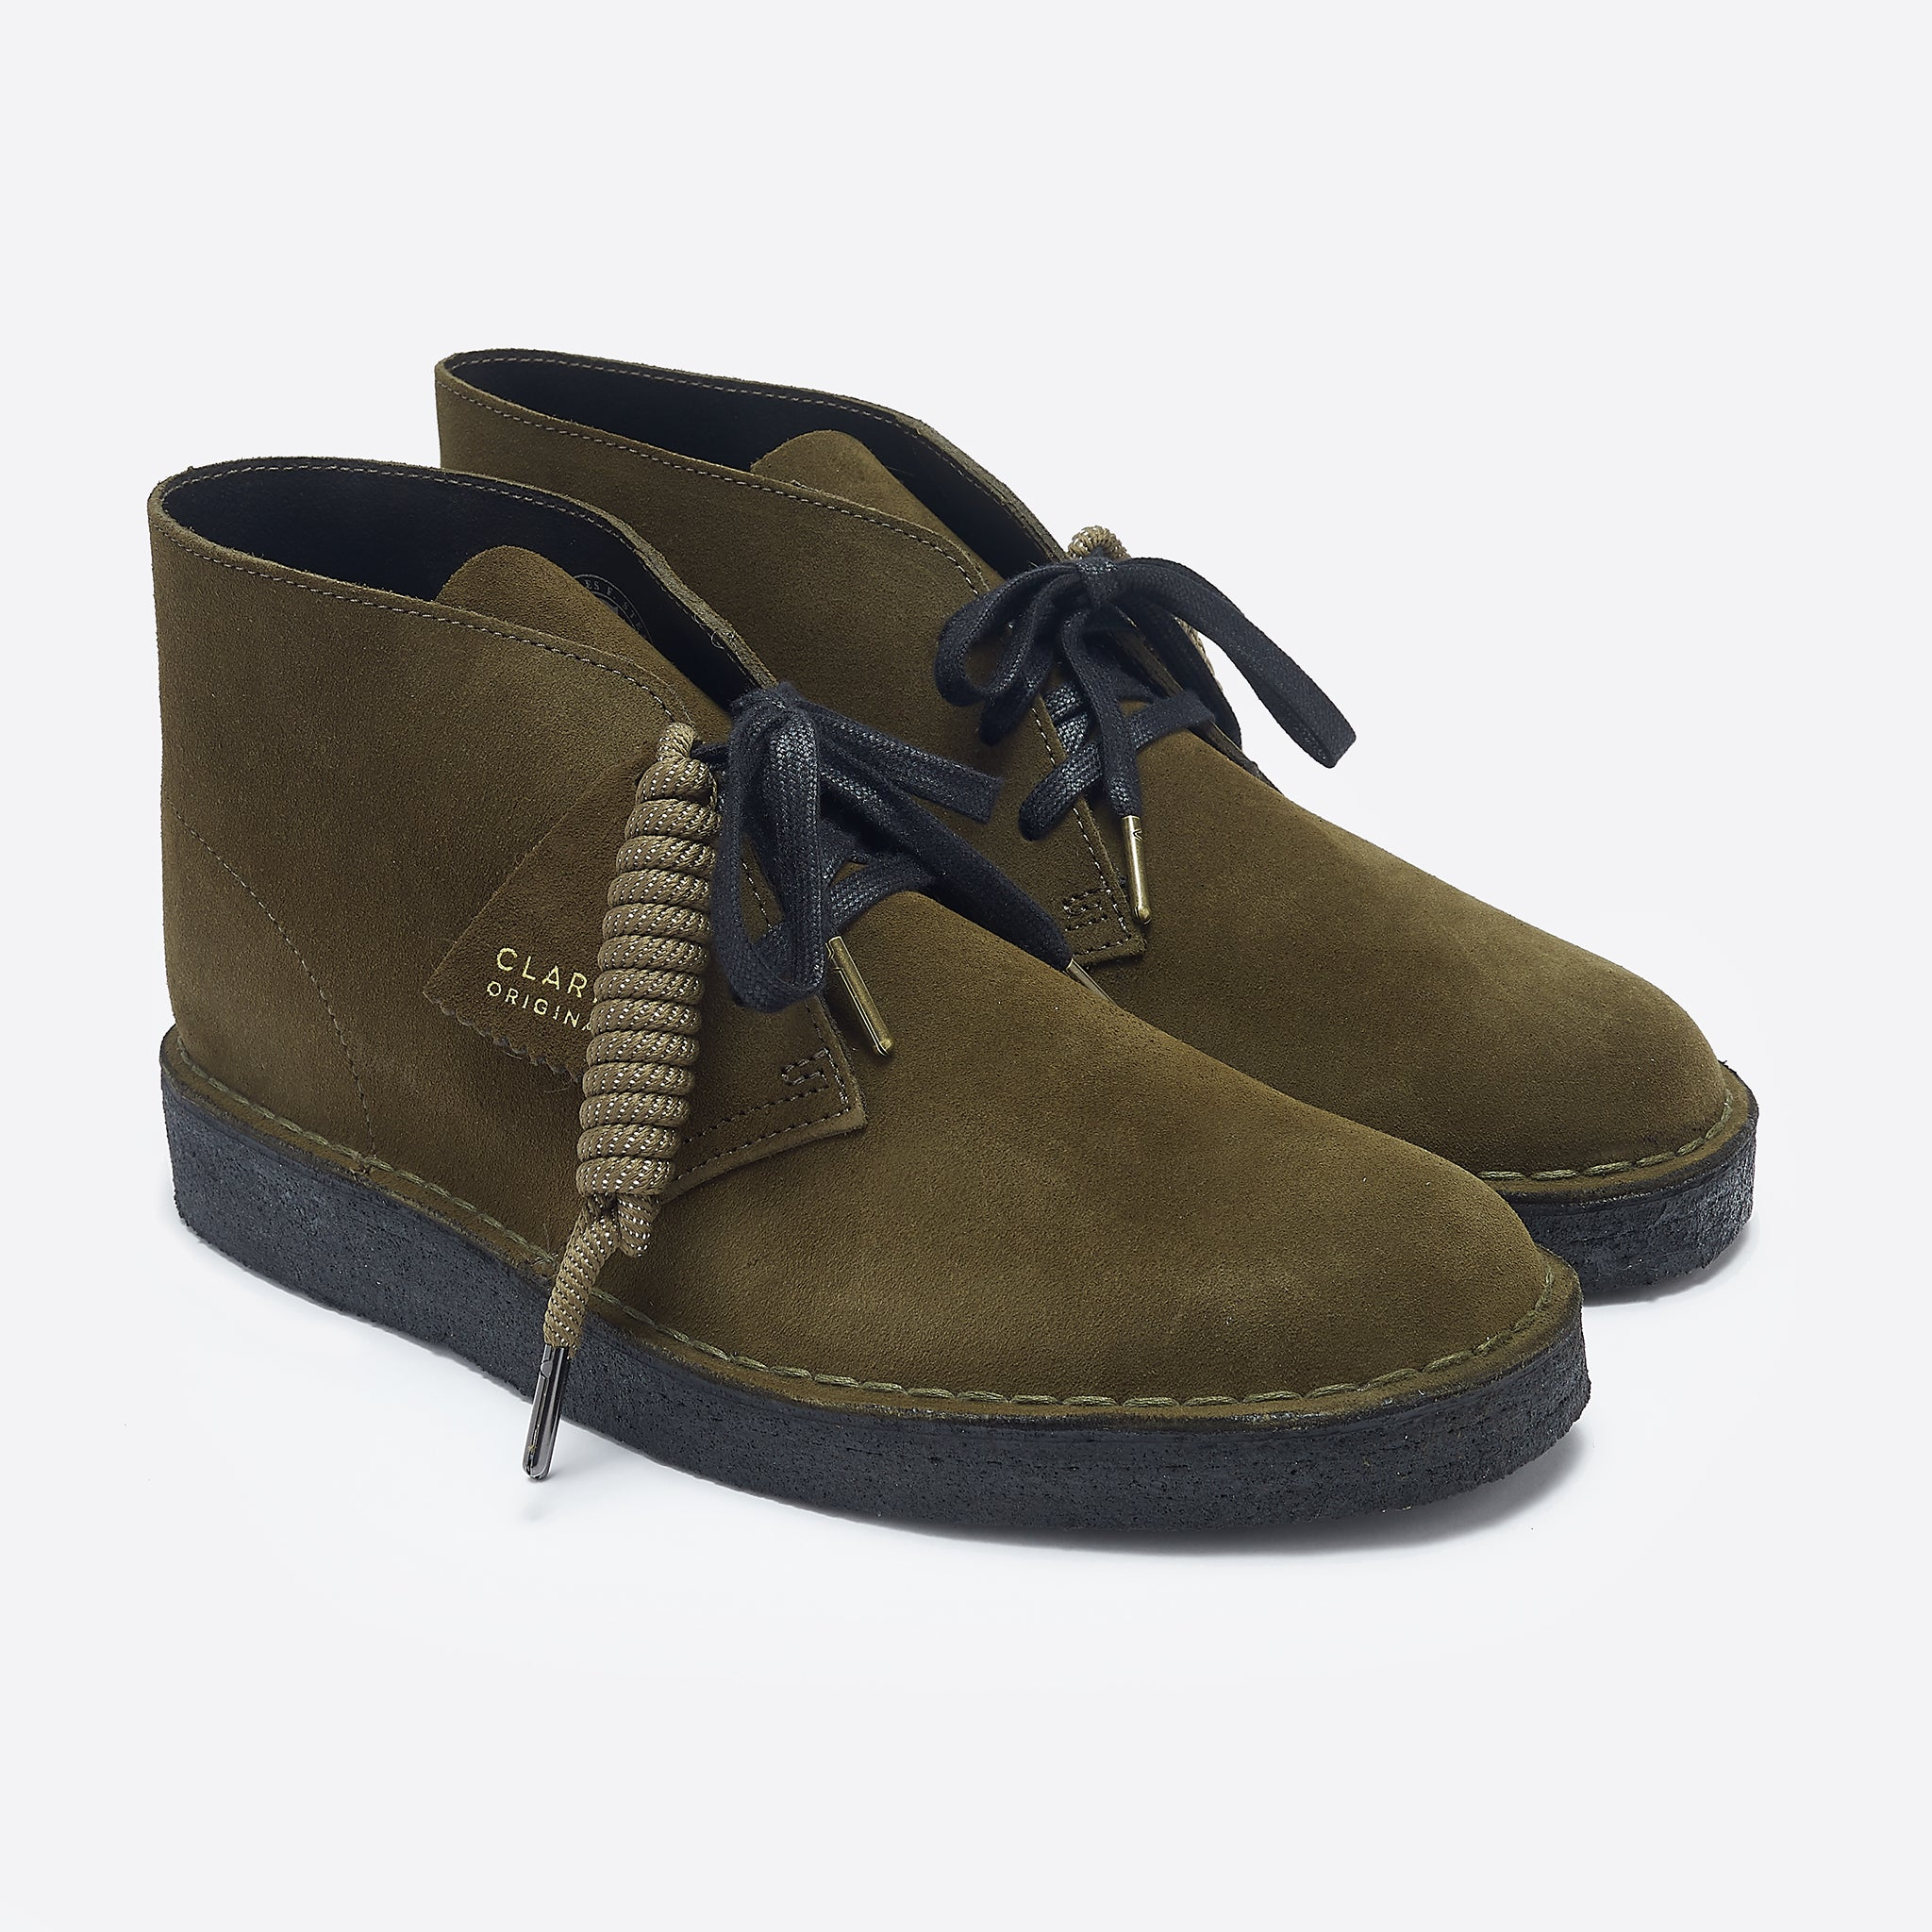 Clarks Original Desert Coal in Olive Suede